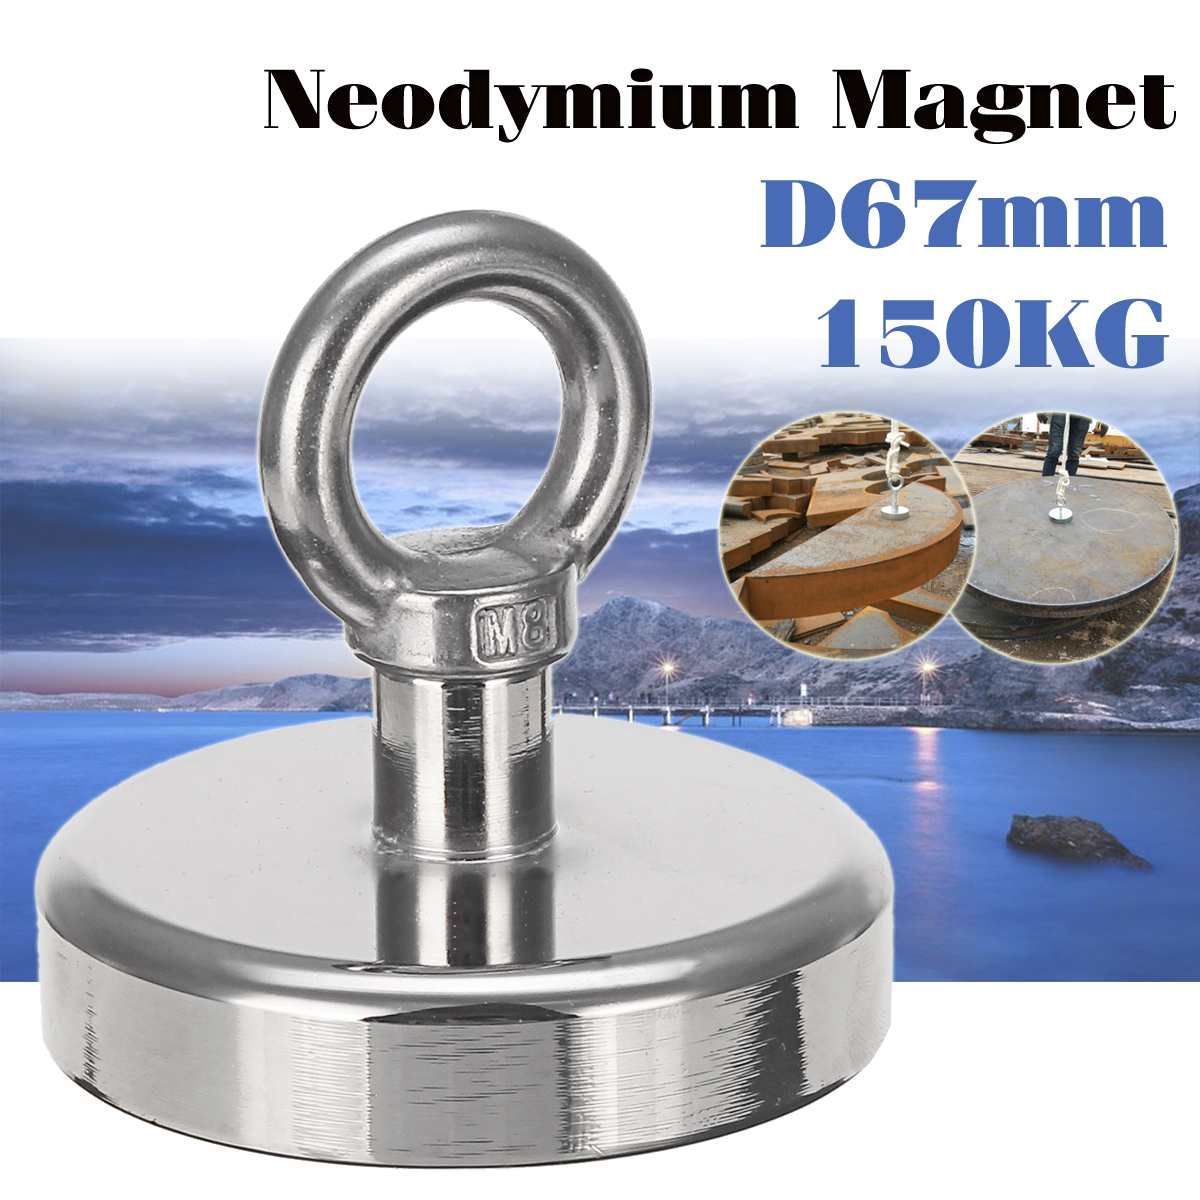 Super Strong D67mm 150KG Neodymium Fishing Diving Salvage Recovery Magnet For Detecting Metal Treasure Powerful Magnetic HolderSuper Strong D67mm 150KG Neodymium Fishing Diving Salvage Recovery Magnet For Detecting Metal Treasure Powerful Magnetic Holder